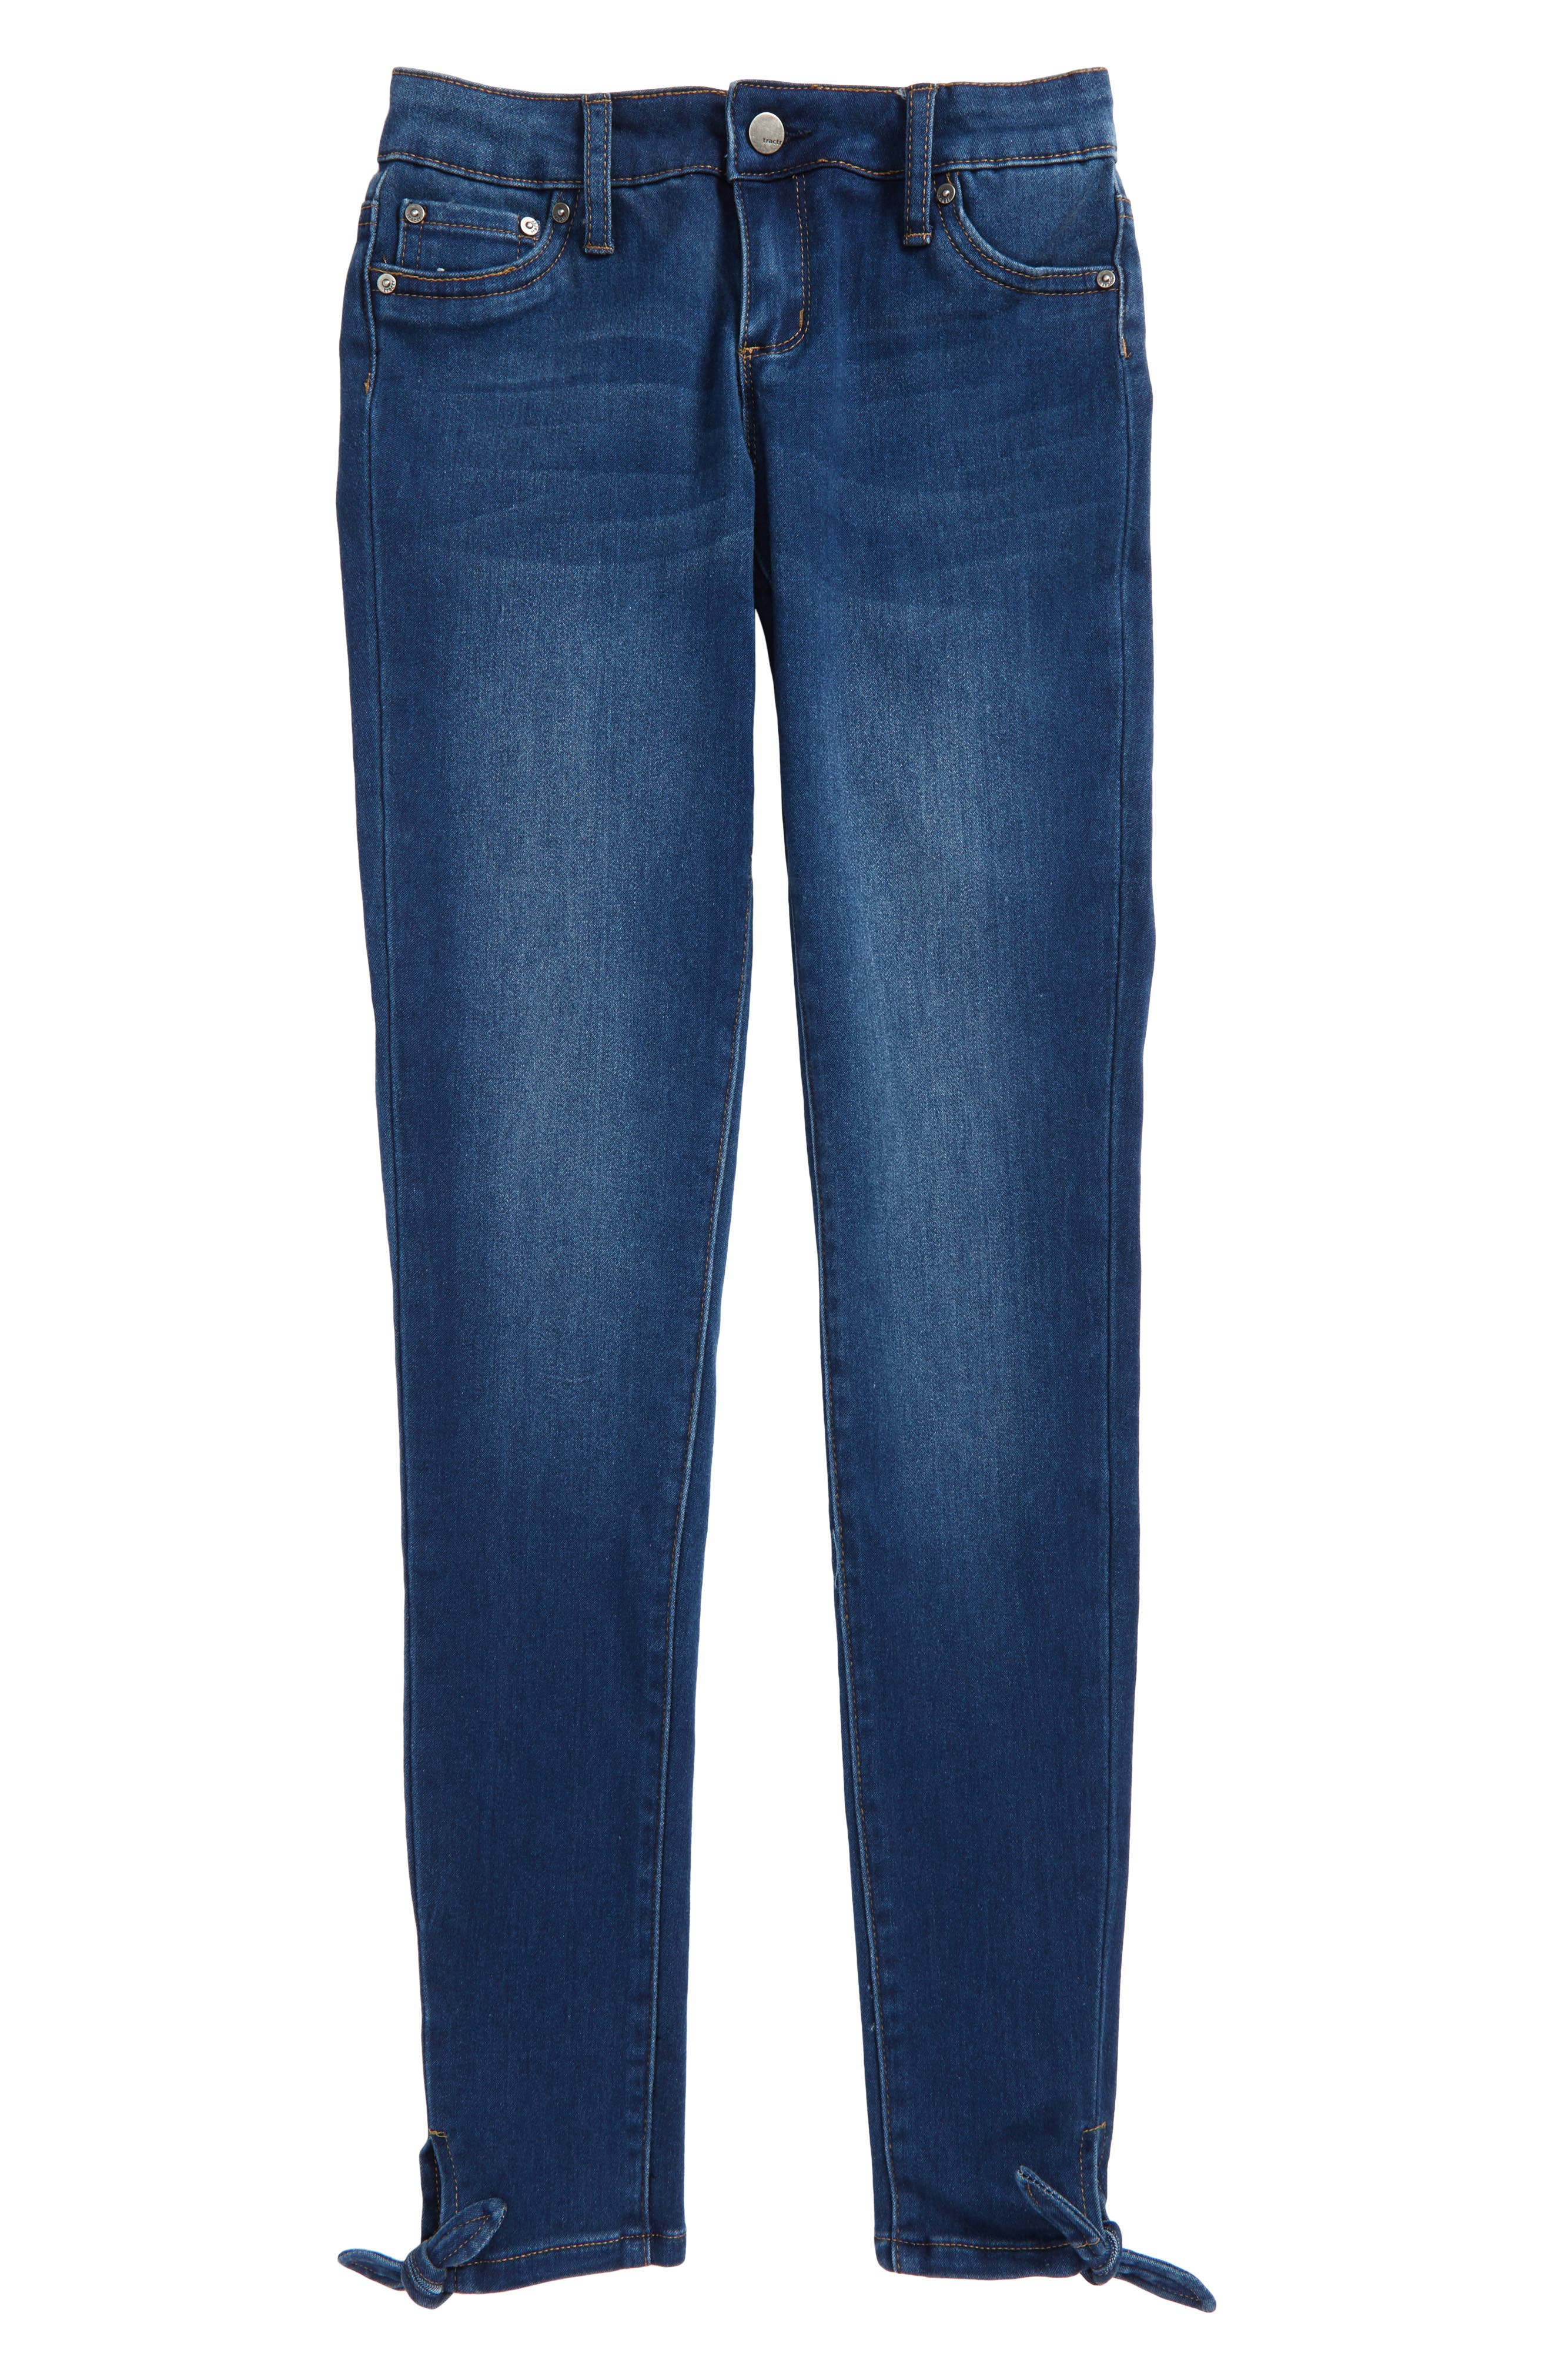 Main Image - Tractr Ankle Tie Skinny Jeans (Big Girls)